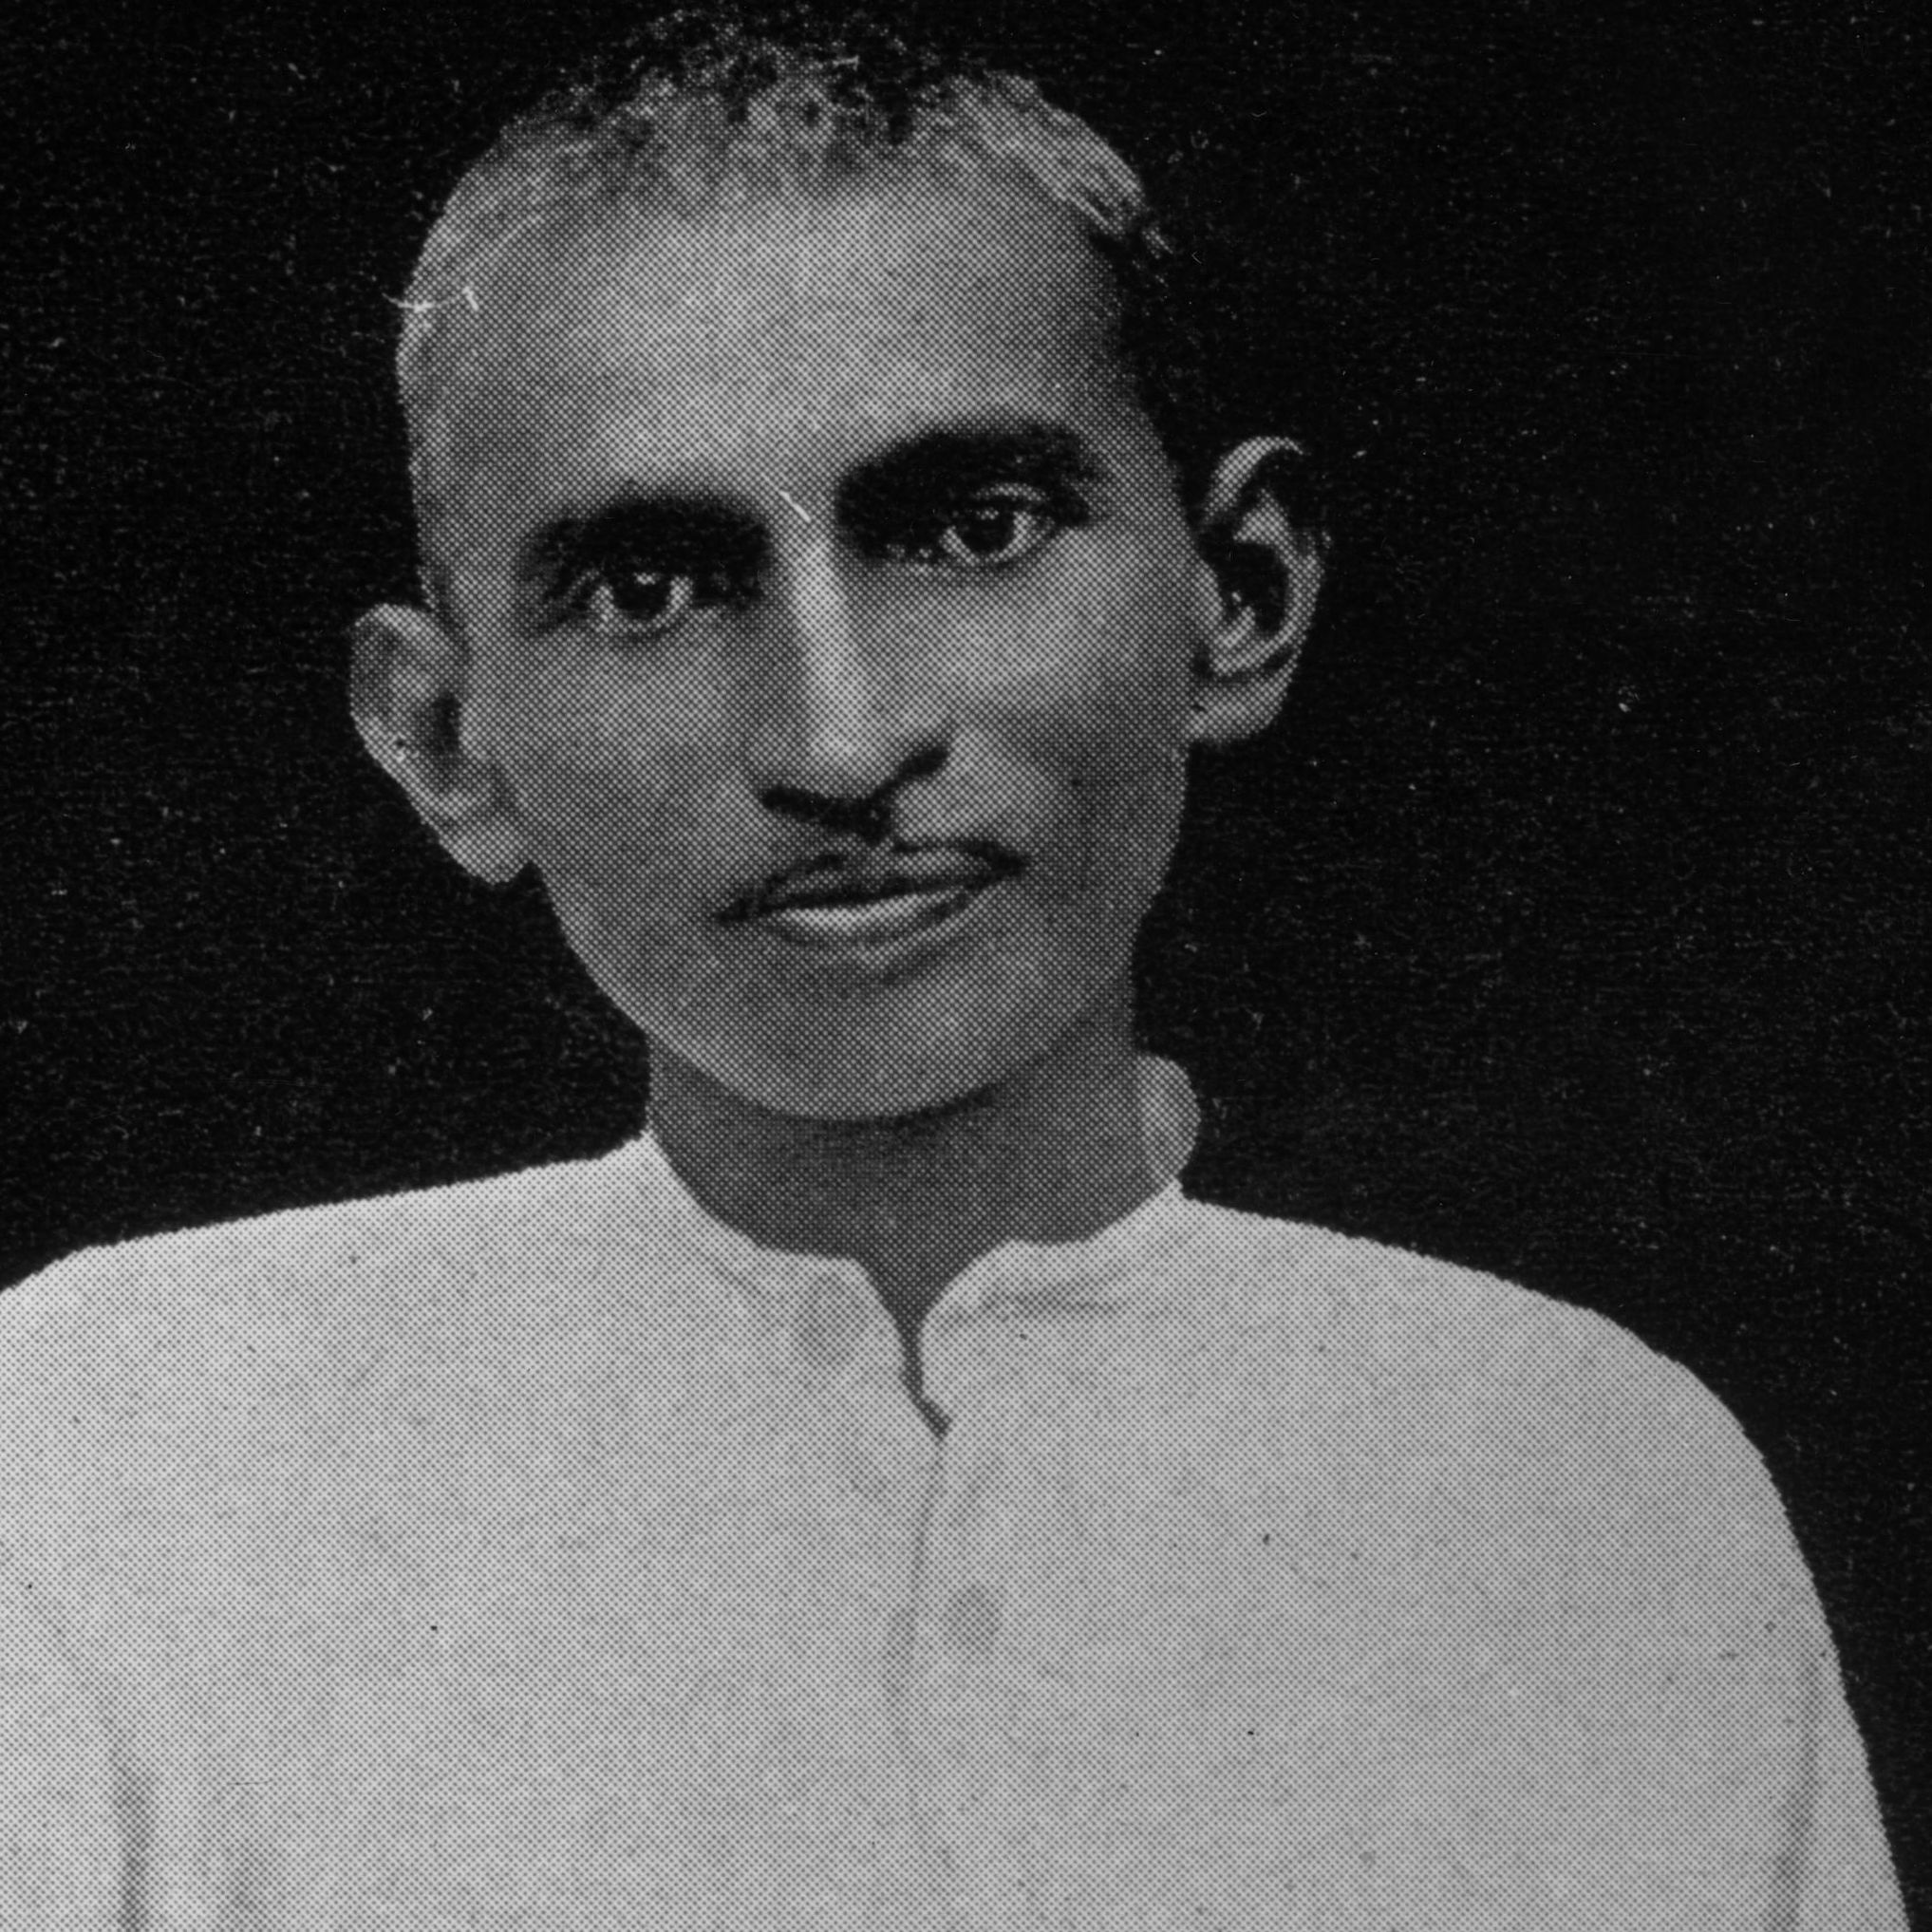 Before Gandhi was the Mahatma, he was a young lawyer in South Africa.